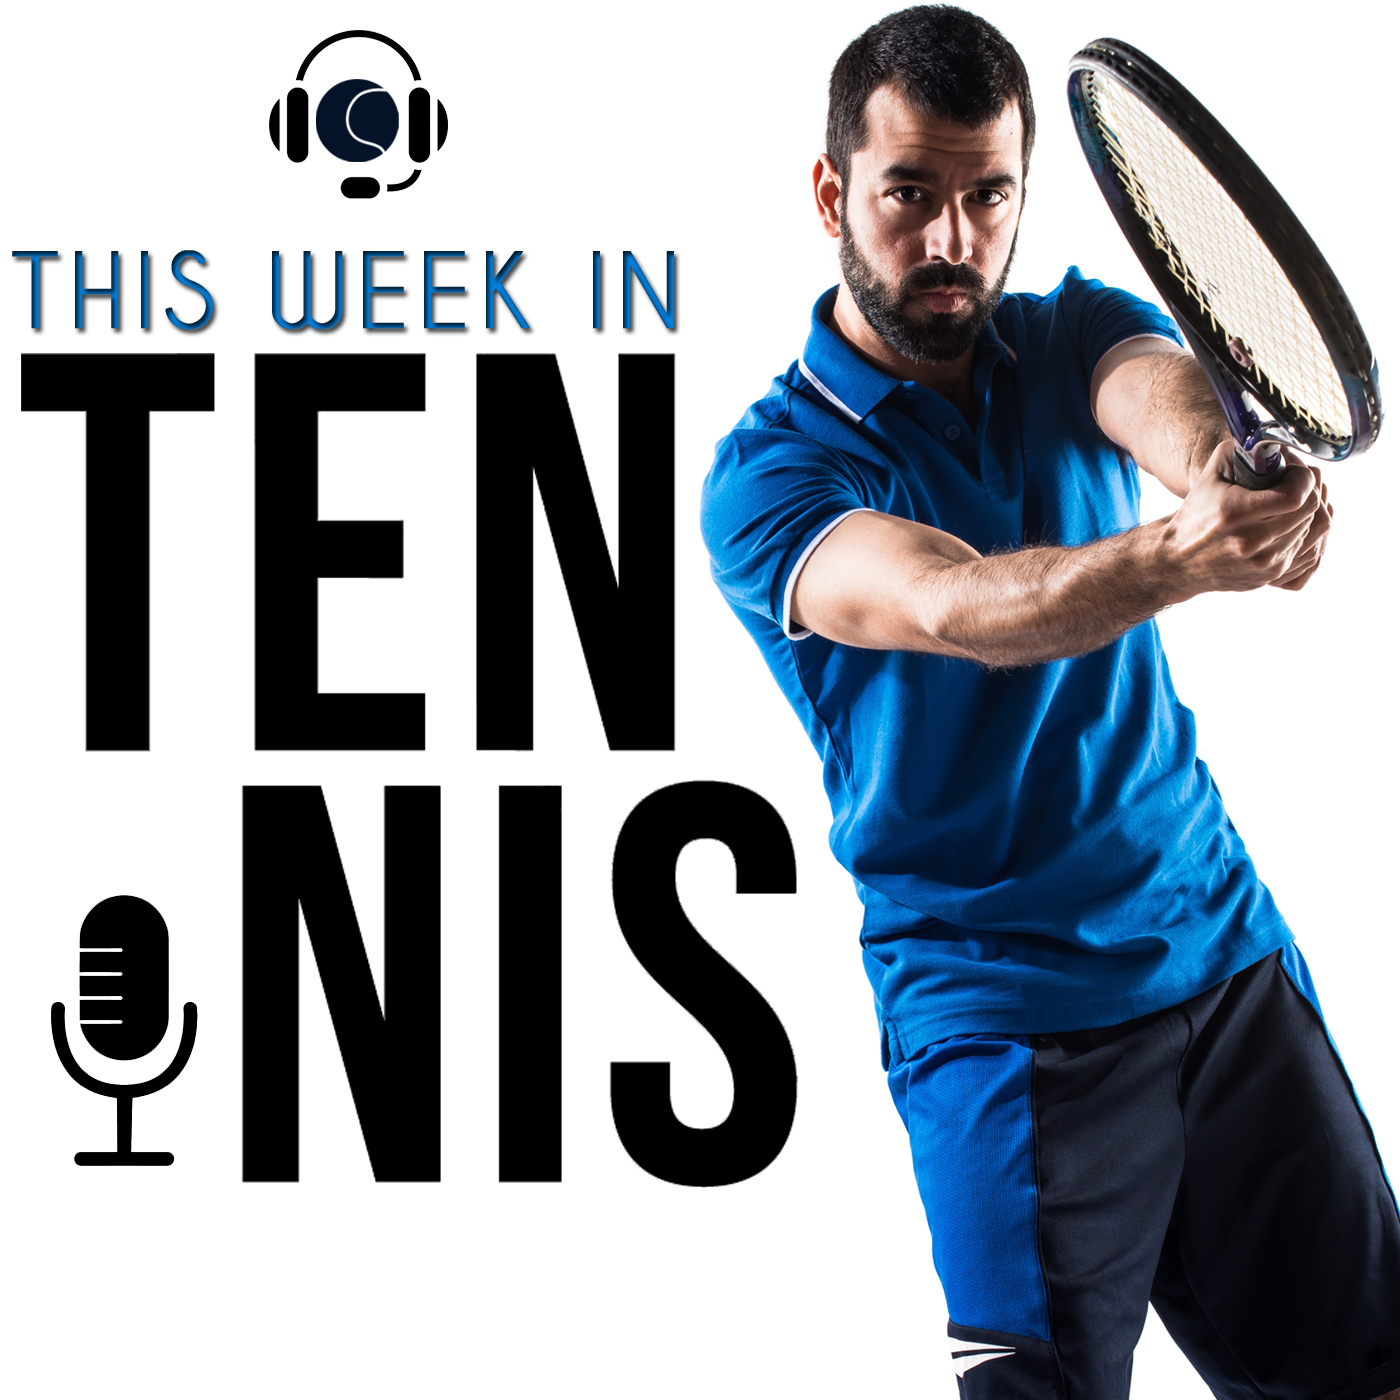 This Week in Tennis